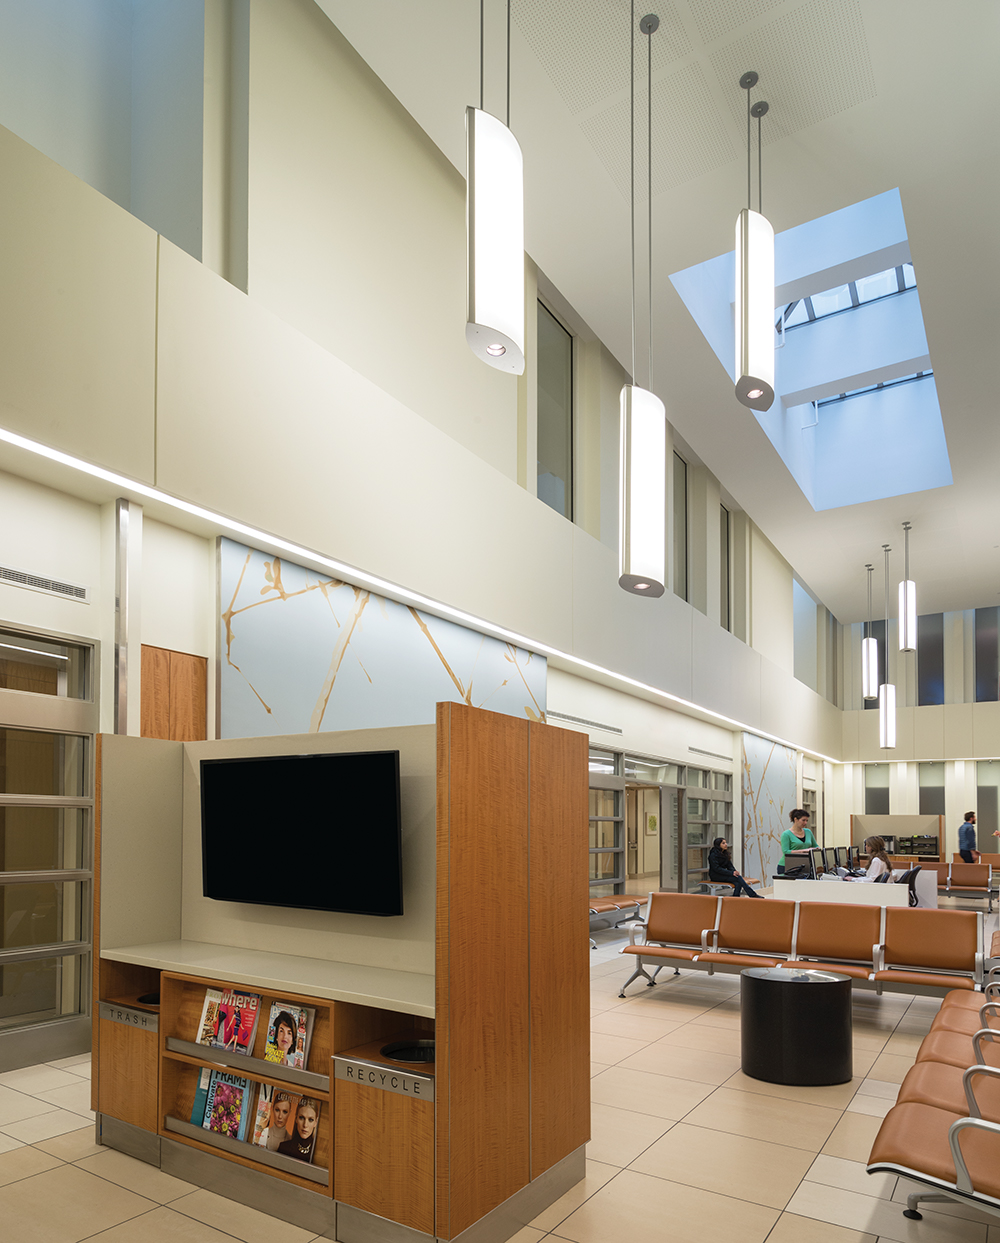 Air Foil pendants hung in a large waiting room for eye-catching hospital lighting design.